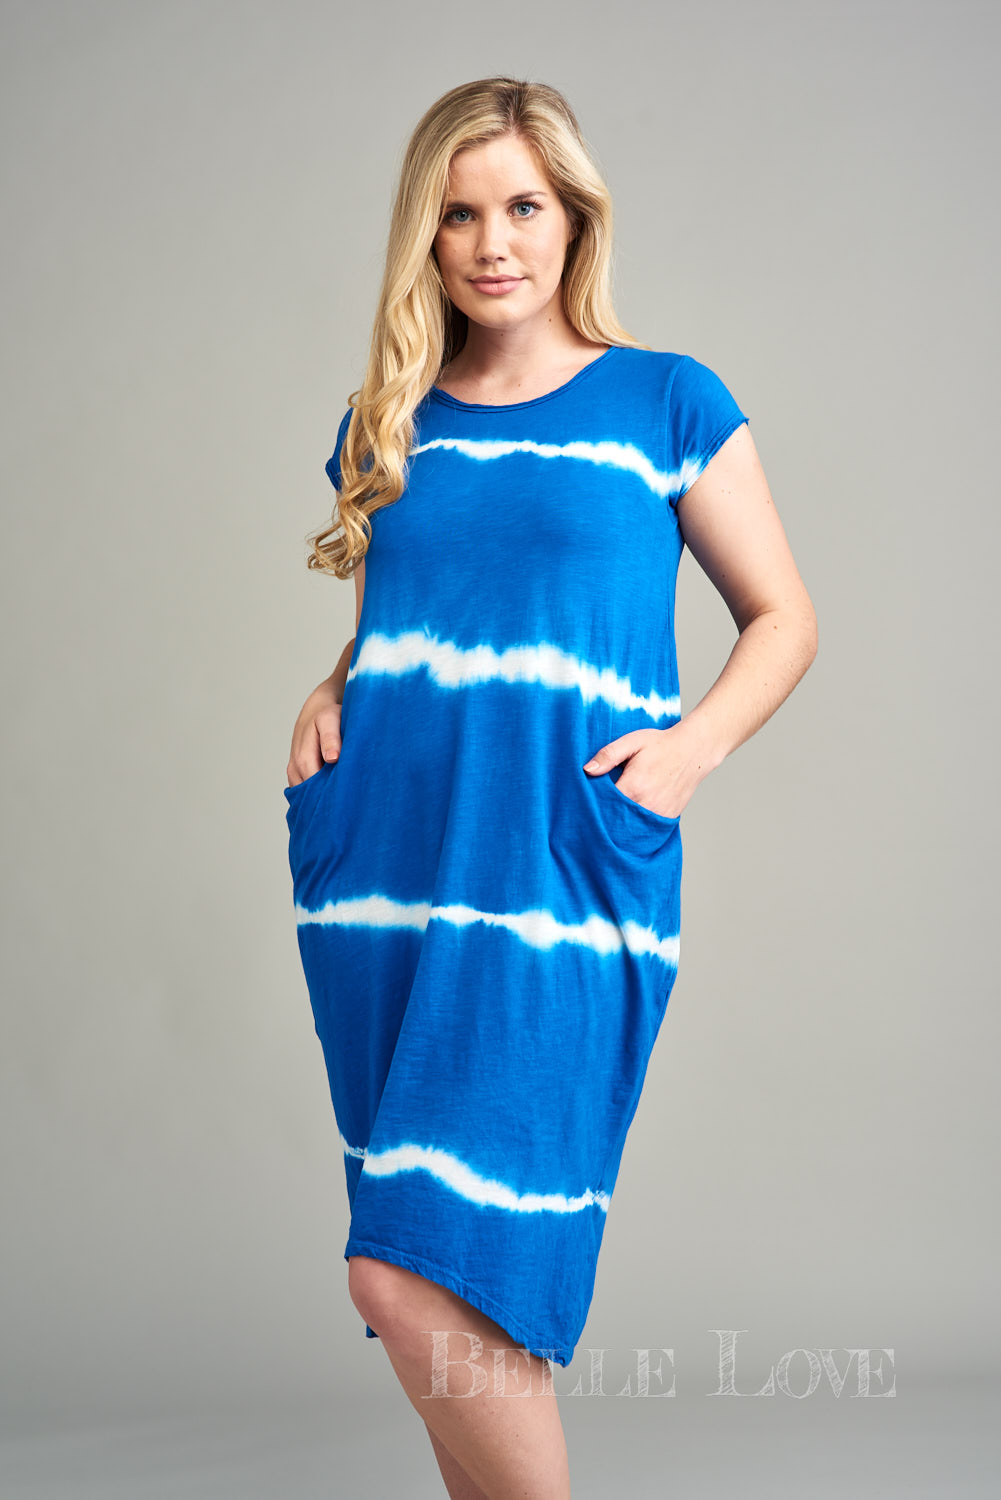 Belle Love Italy Caelia Tie-Dye Dress